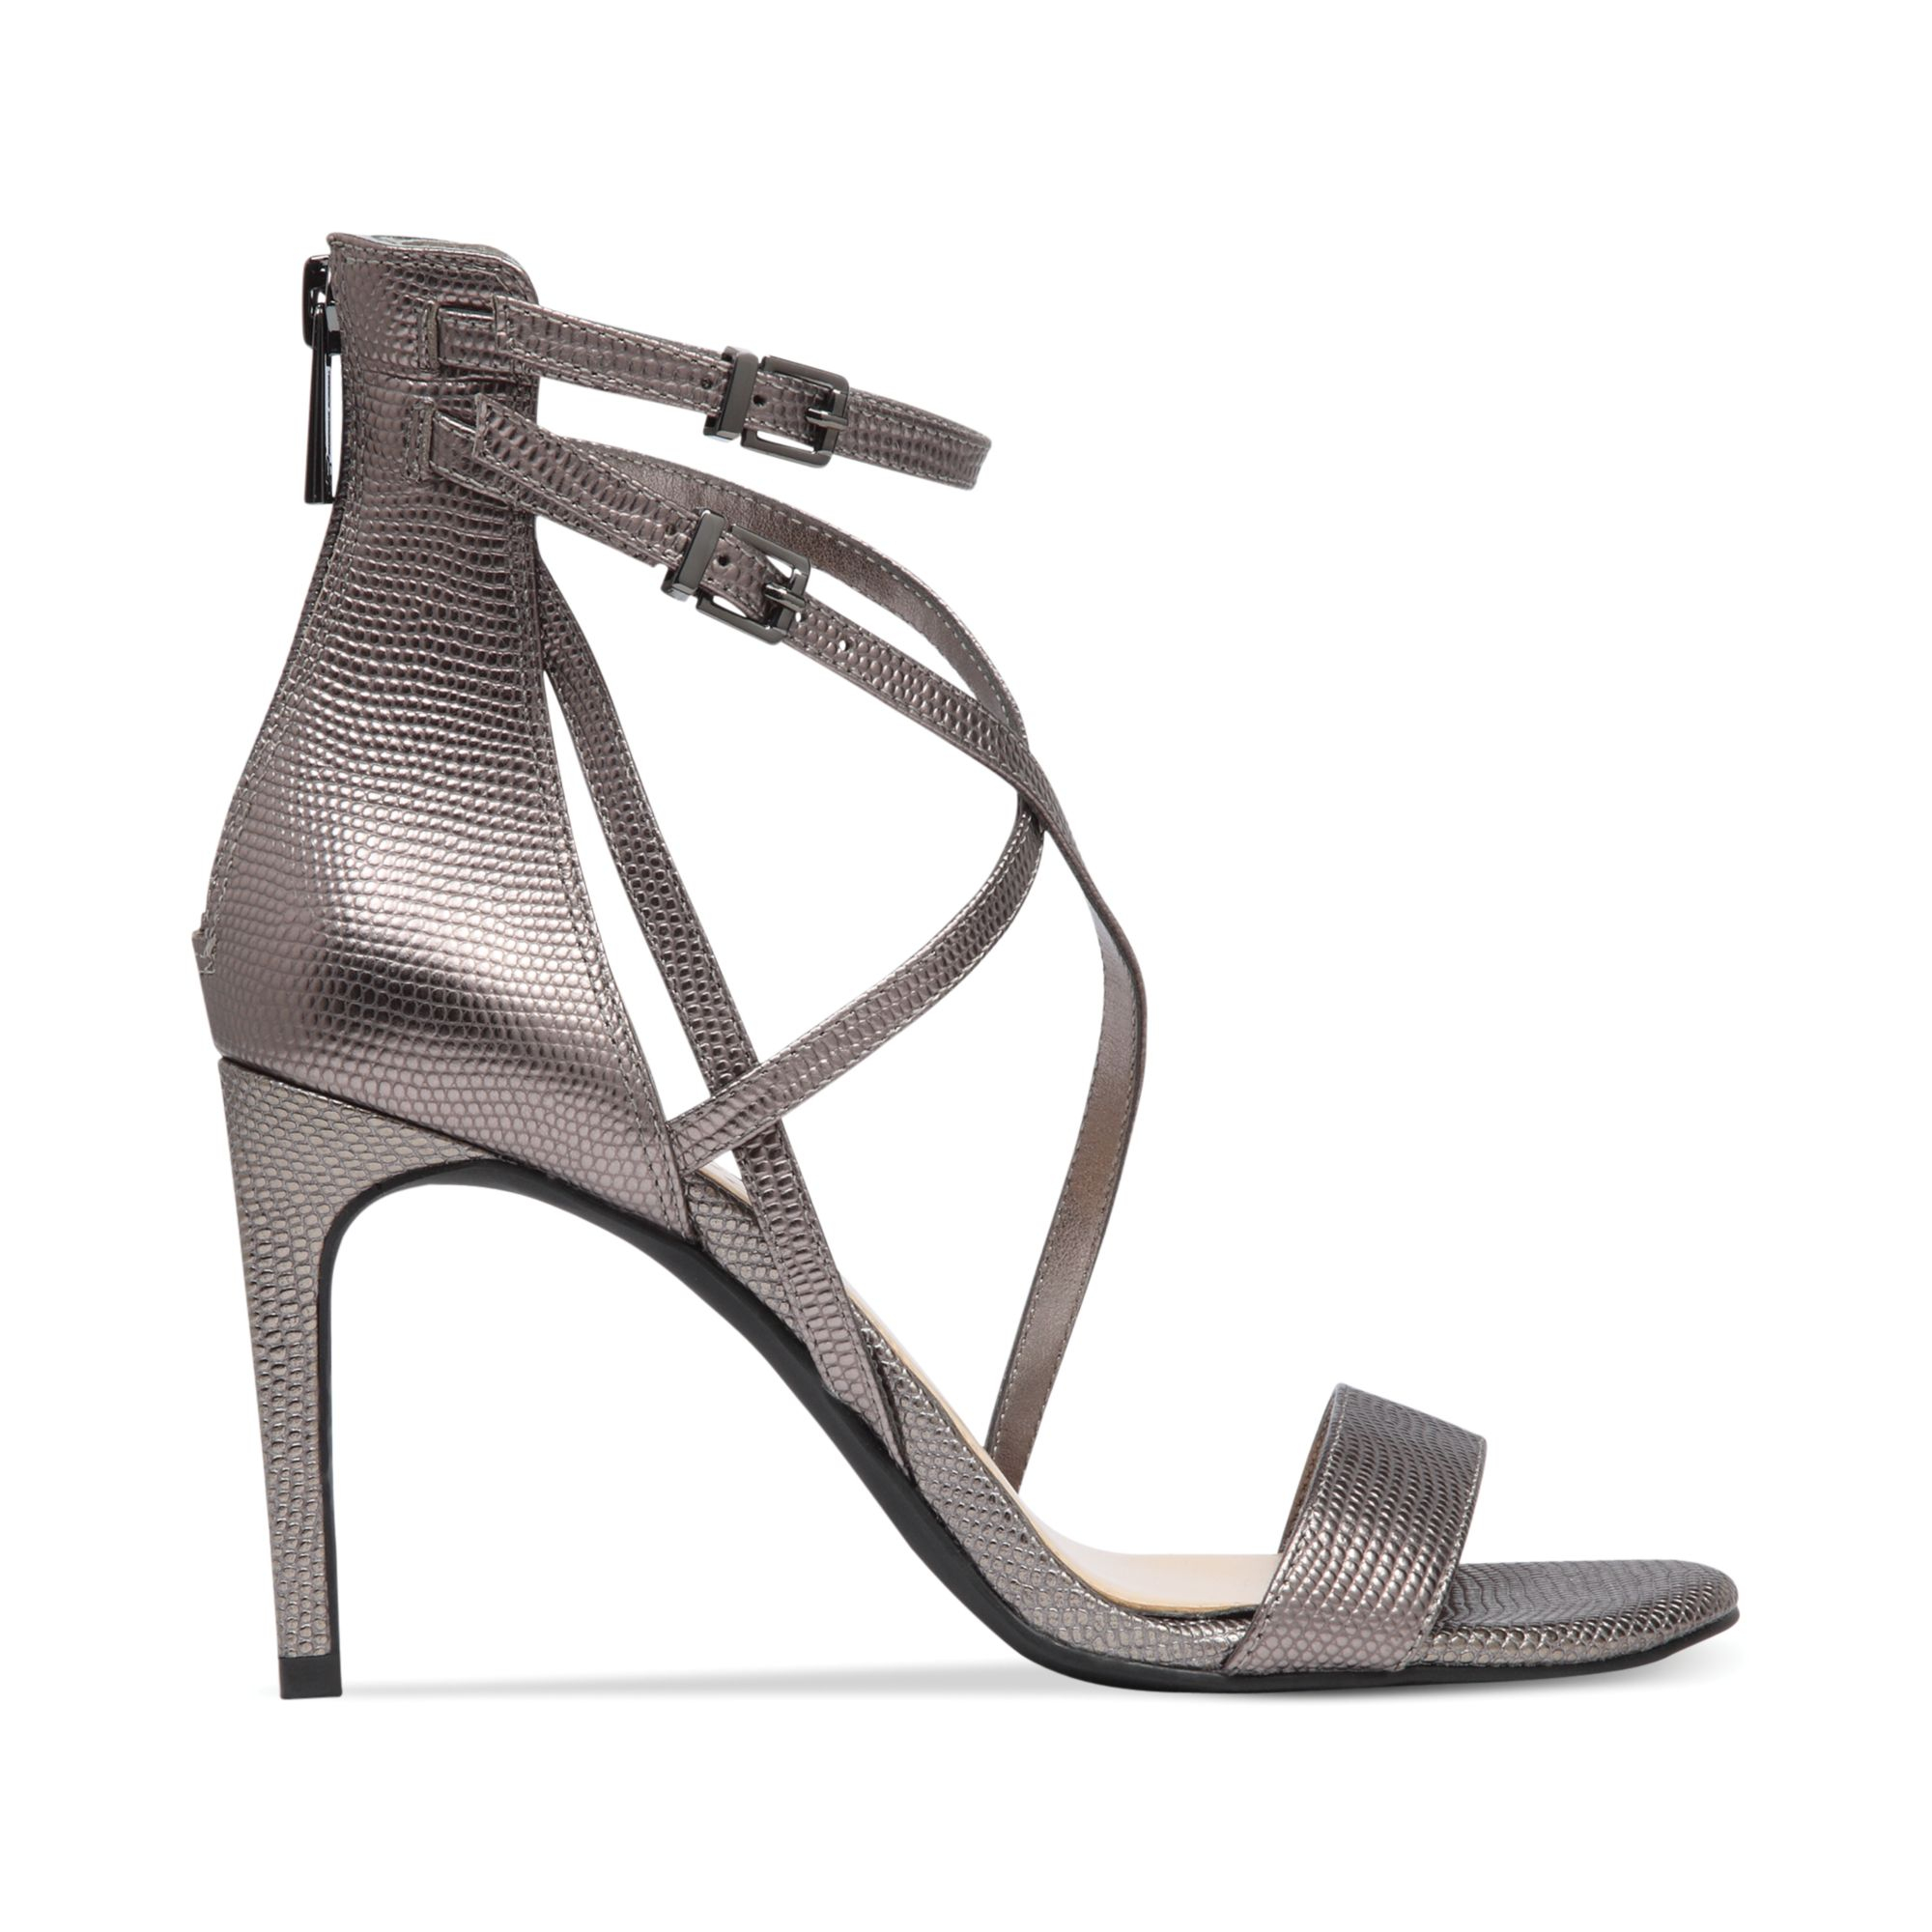 Jessica Simpson Myelle Strappy Sandals In Gray Lyst